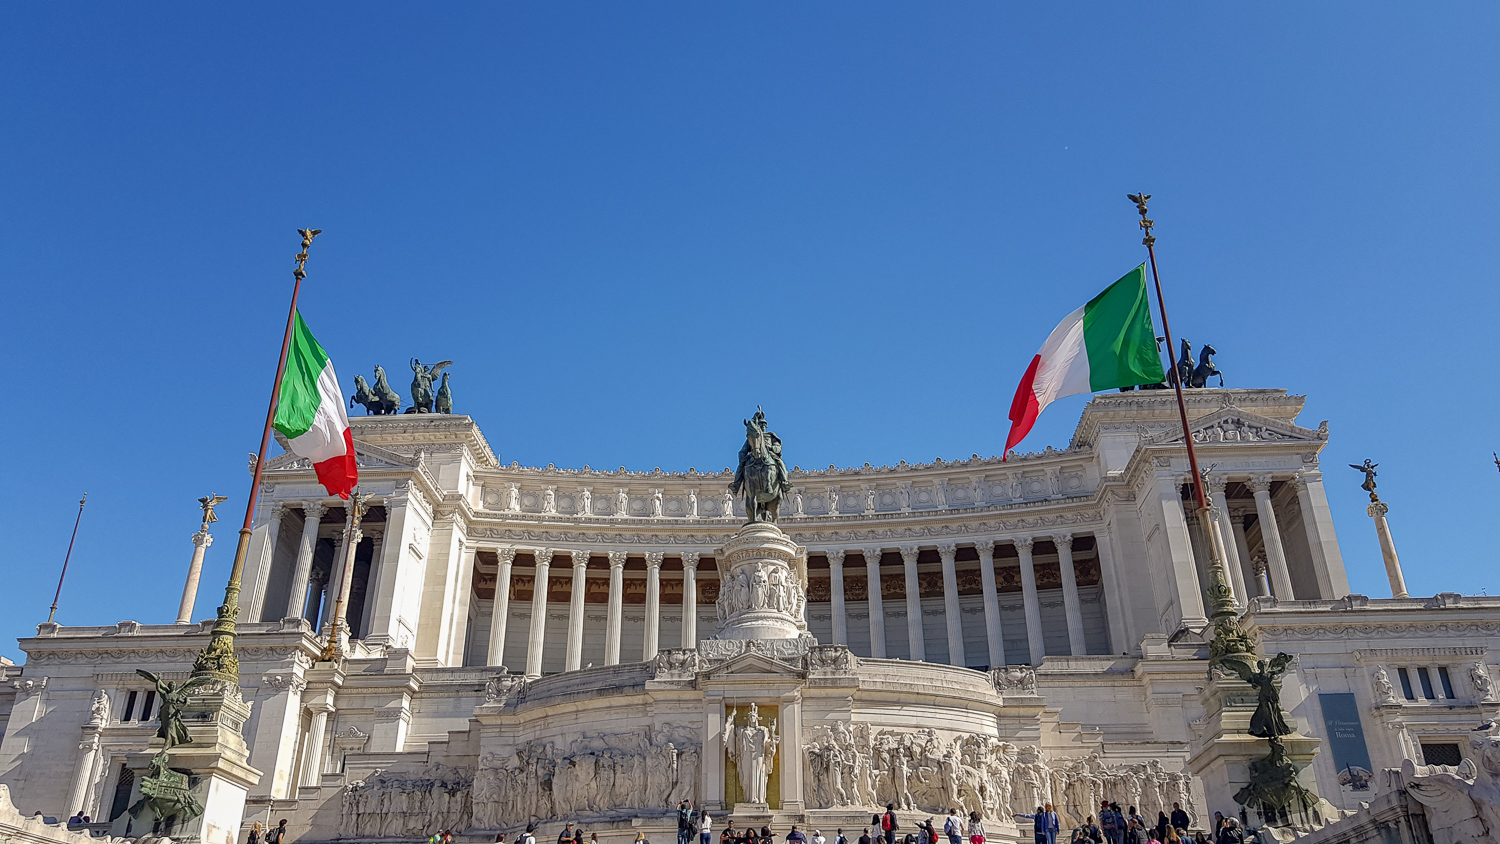 Altare della Patria Altar of the Fatherland